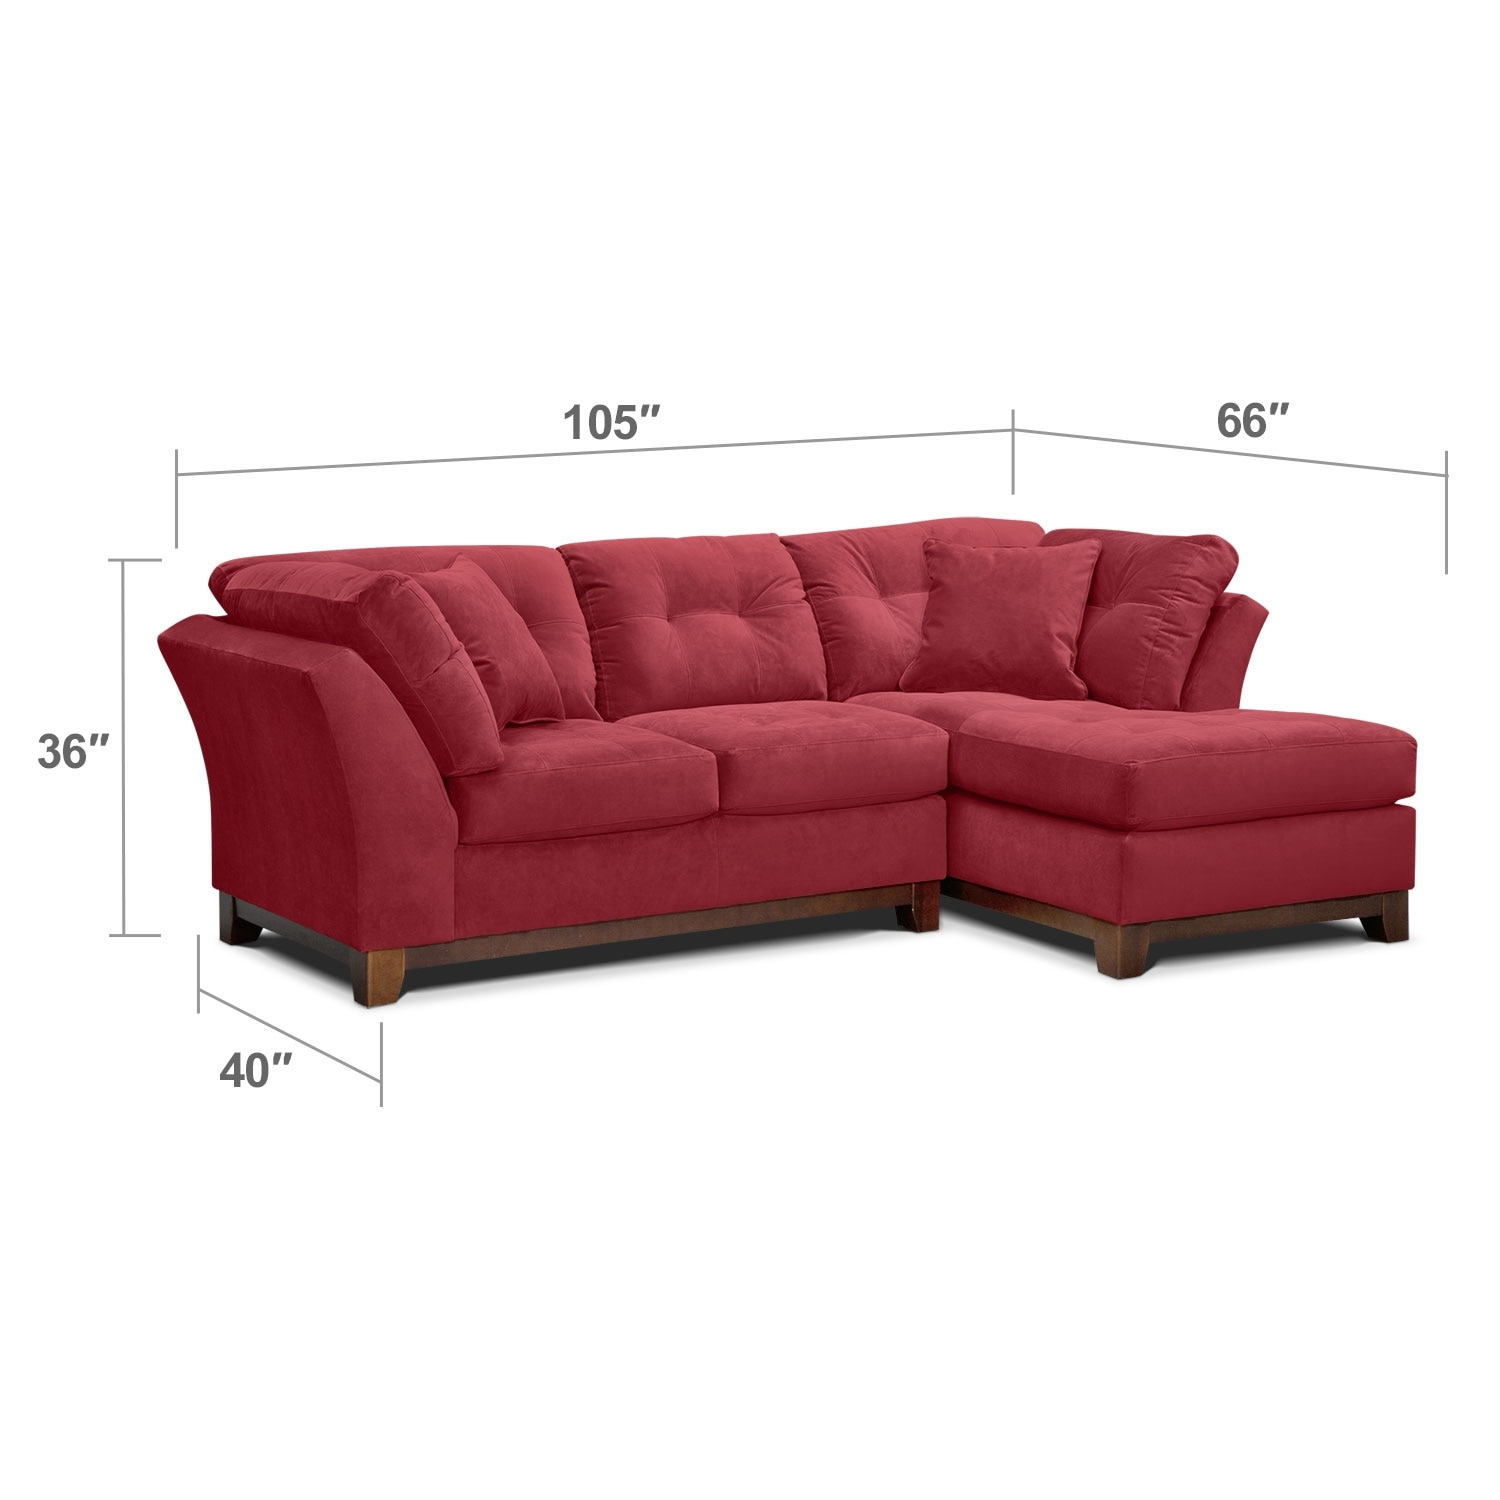 Living Room Furniture - Solace Poppy II 2 Pc. Sectional (Alternate Reverse)